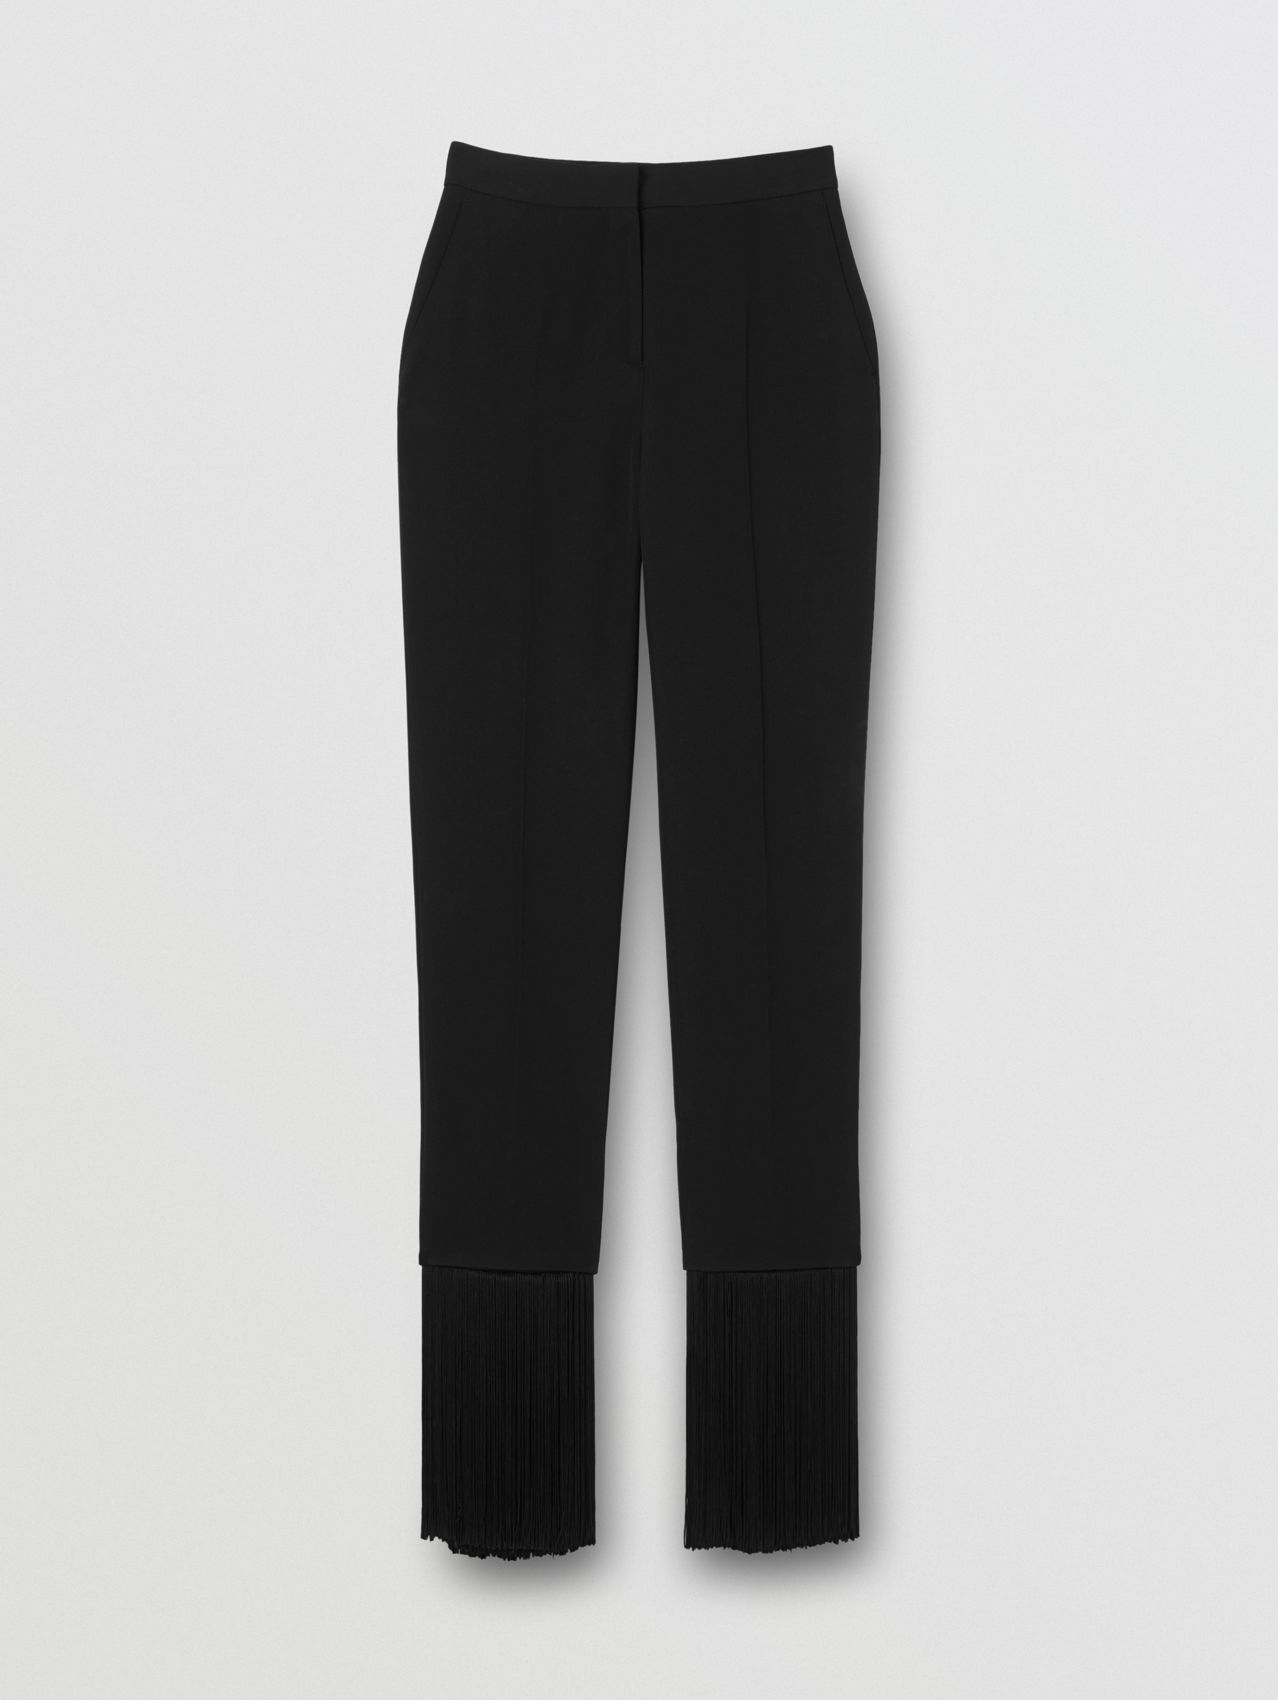 Fringed Grain De Poudre Wool Tailored Trousers in Black